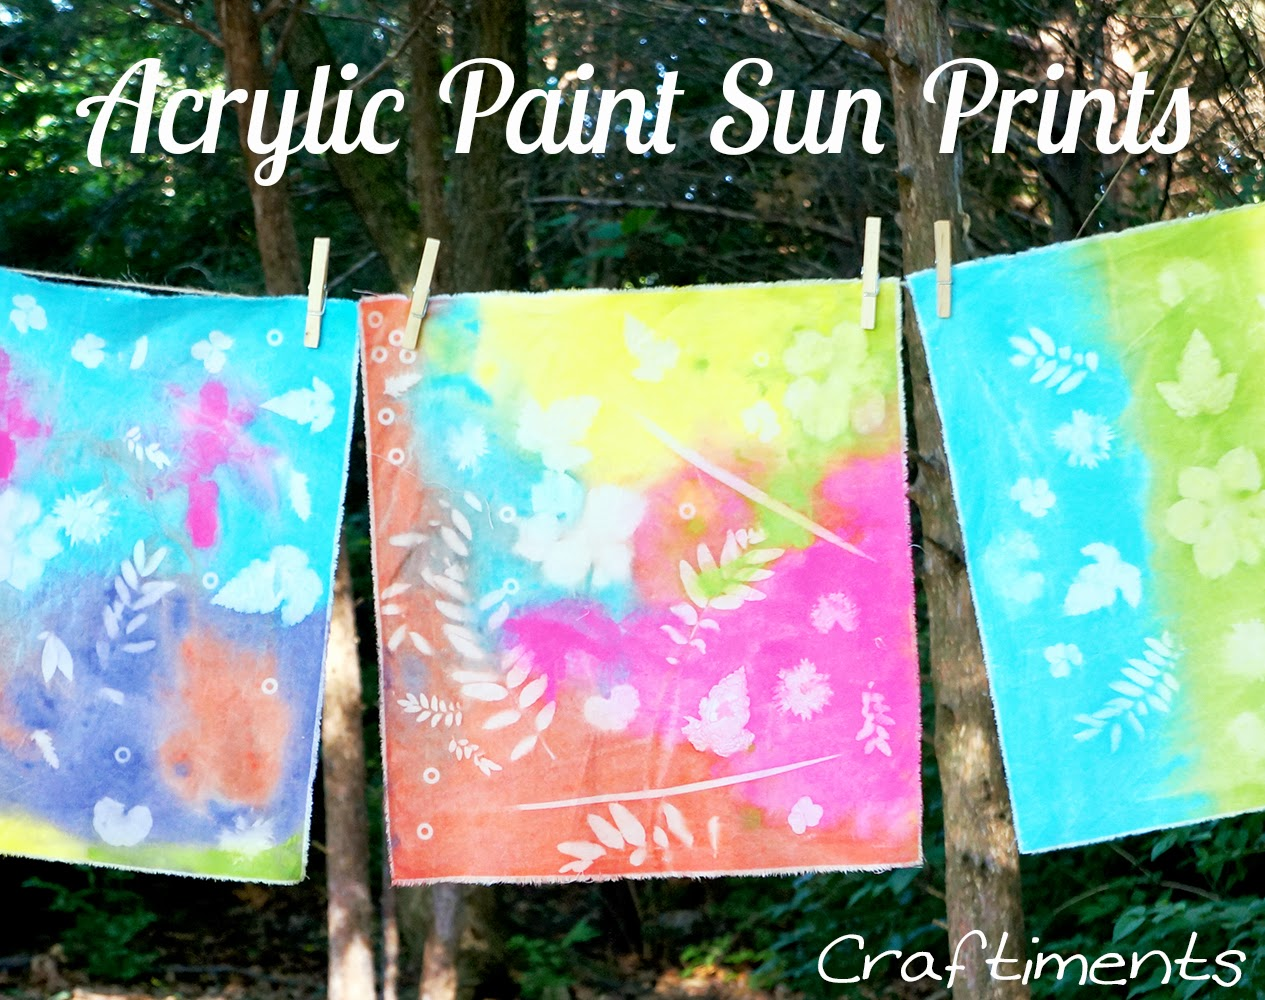 Craftiments:  Learn how to make faux sun prints on fabric using regular acrylic craft paint